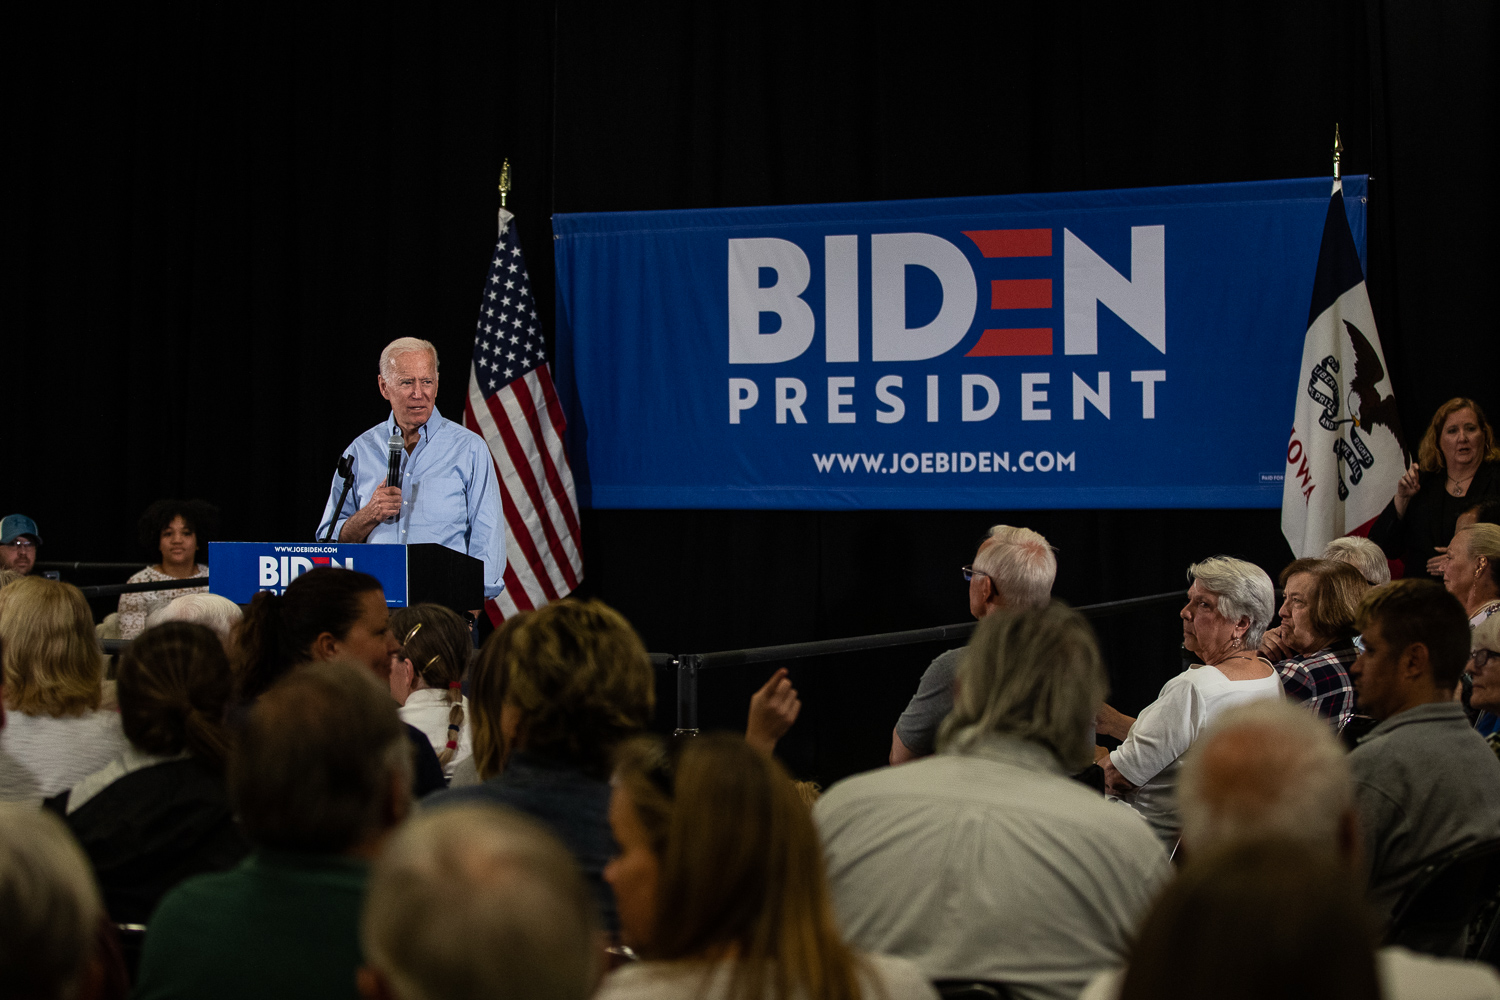 Former Vice President Joe Biden speaks to an audience at Clinton Community College in Clinton, Iowa on Wednesday, June 12, 2019. (Wyatt Dlouhy/The Daily Iowan)